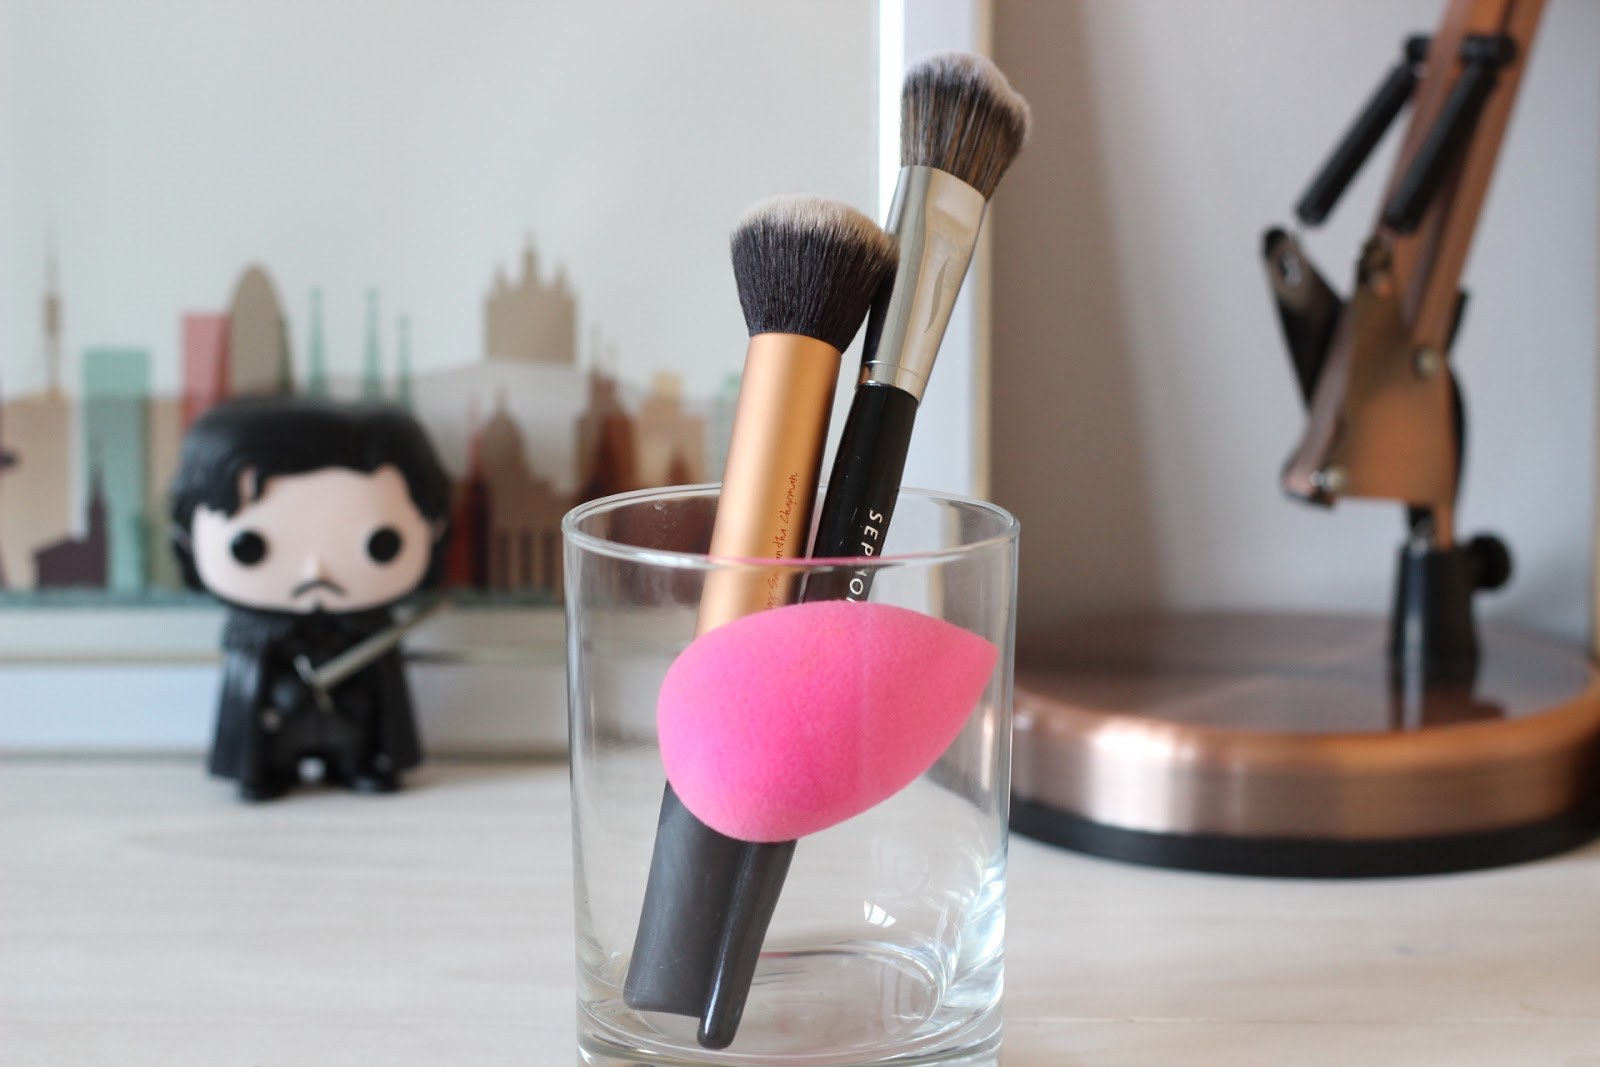 My Top 3 Foundation Brushes/ Tools